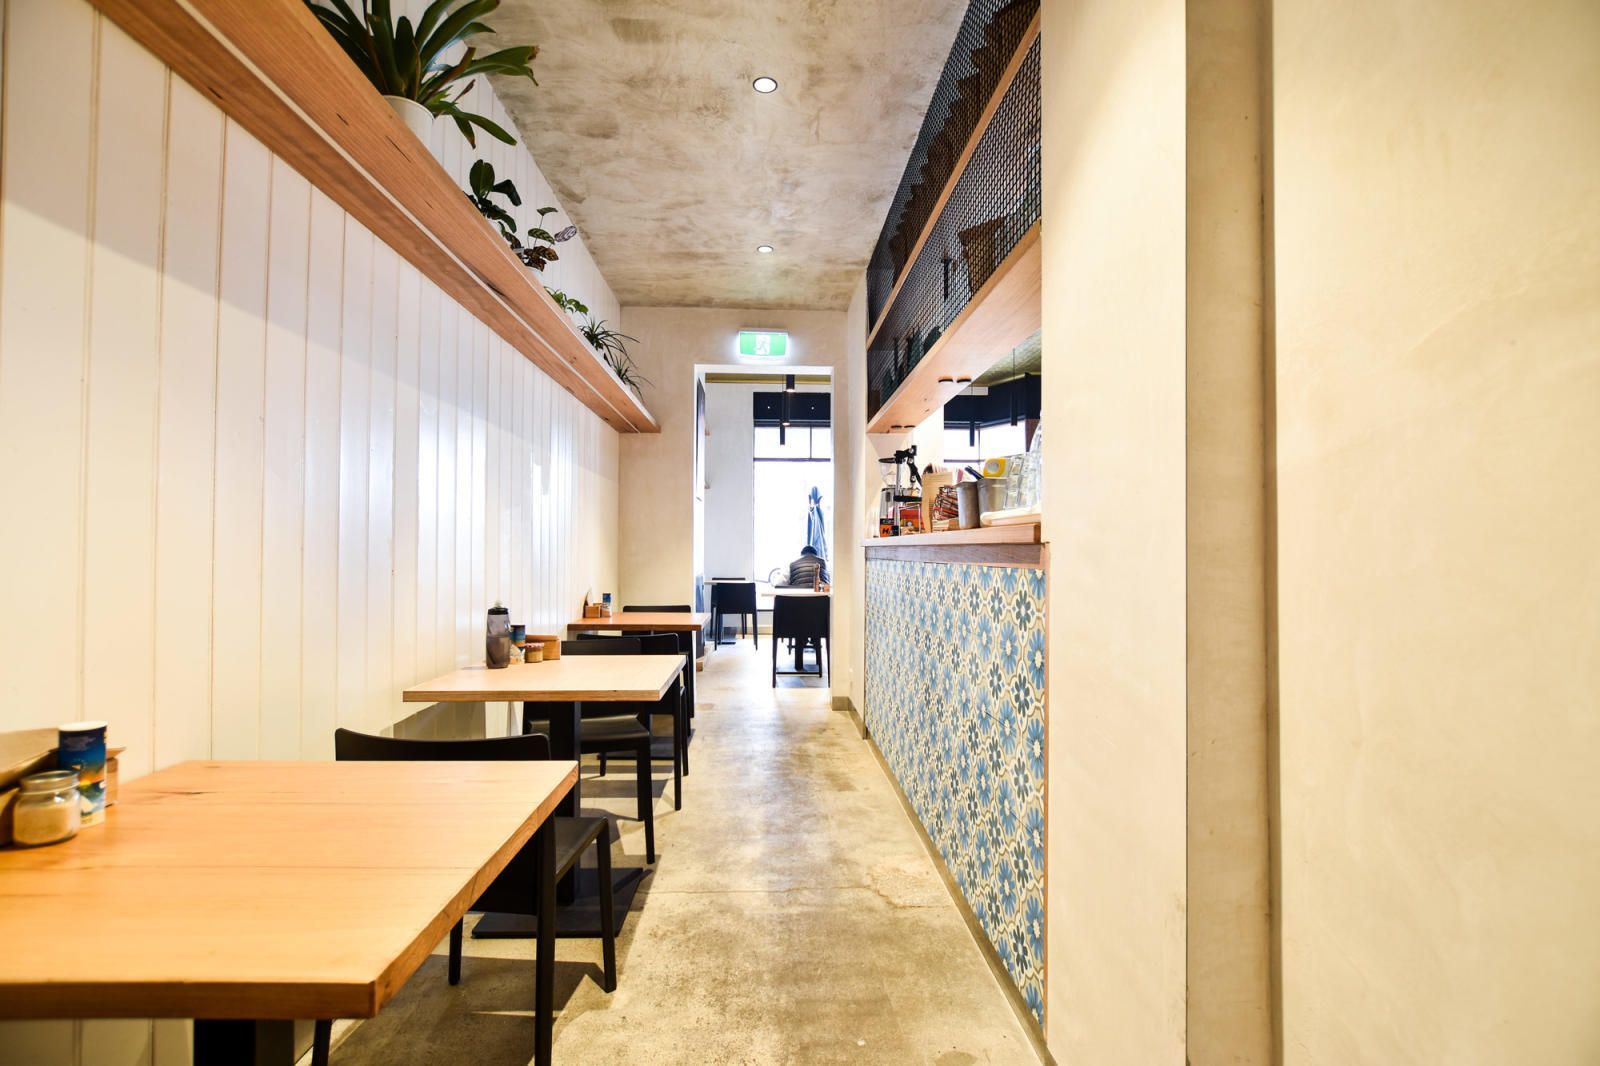 Cucina Restaurant Hillarys Dsc 0251 1 Dining Pinterest Conference Room Home Decor And